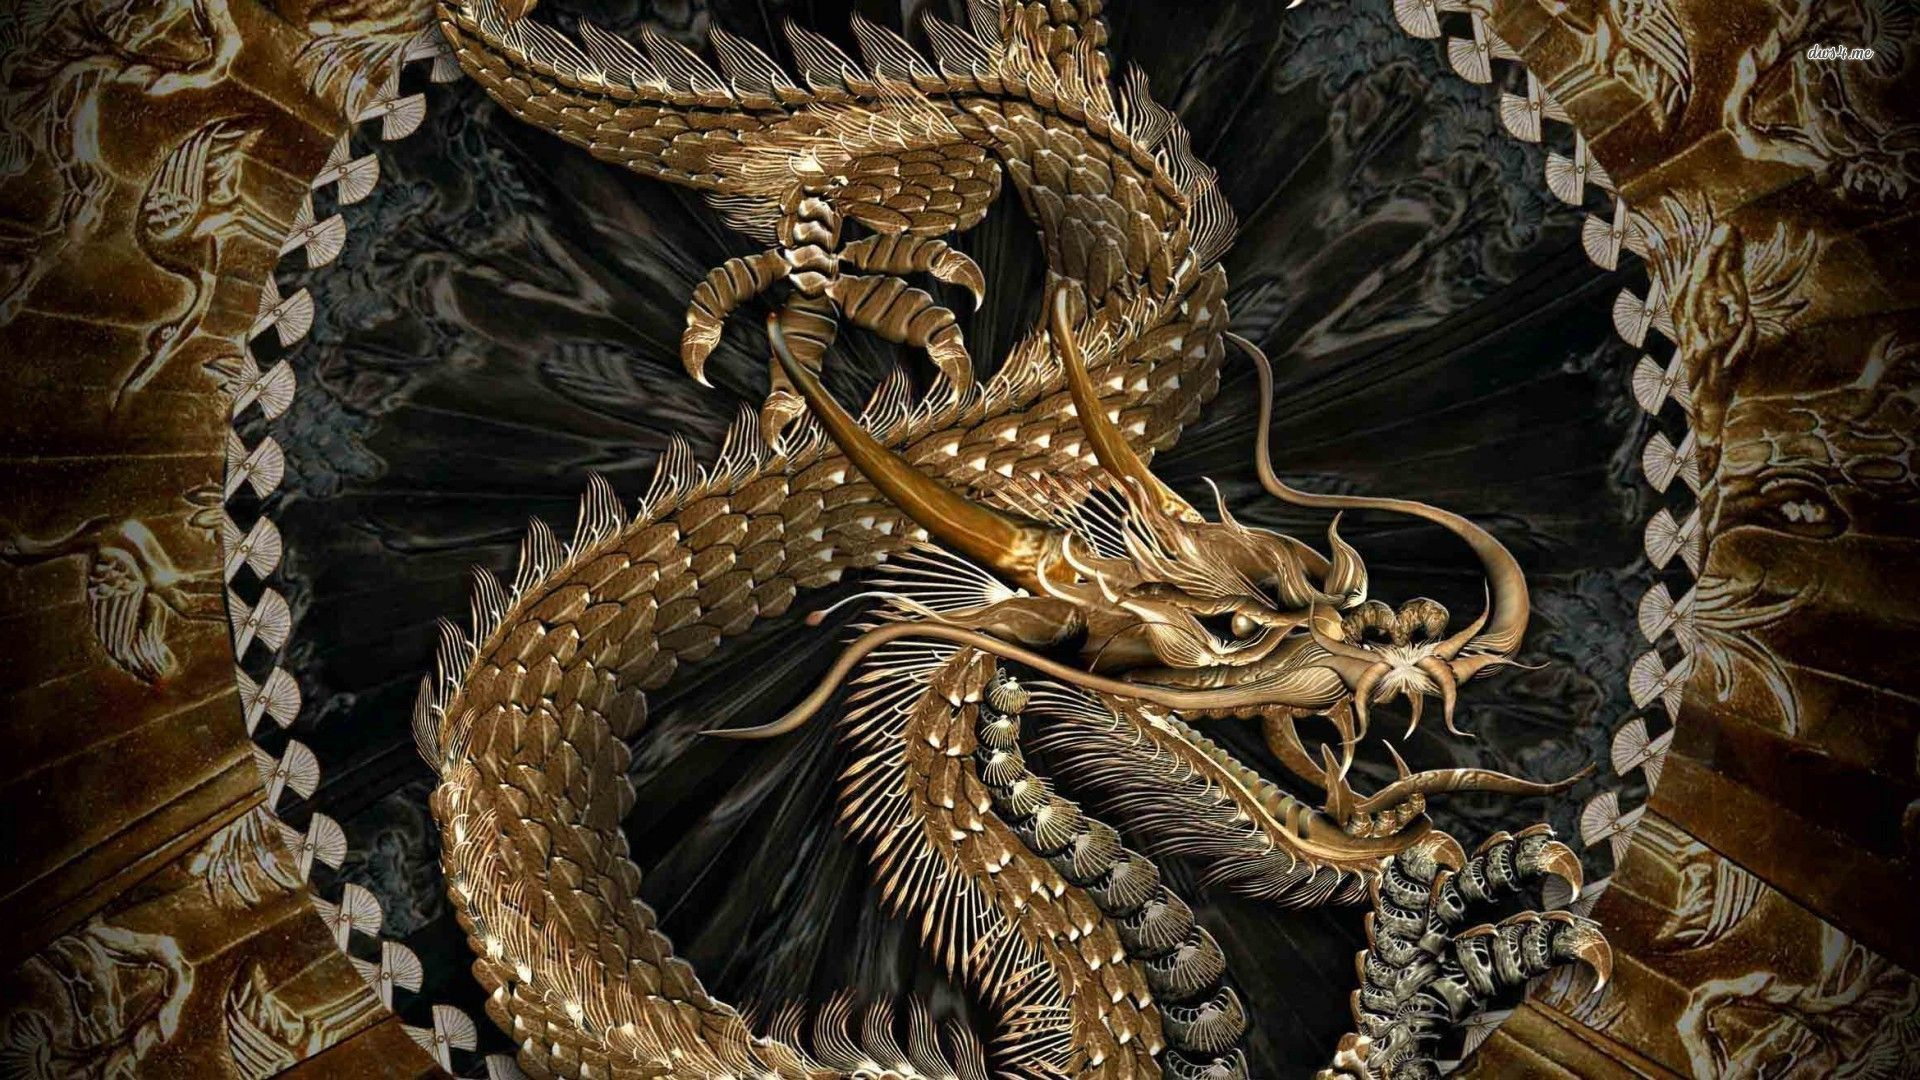 Ancient Chinese Dragon Wallpapers - Top Free Ancient Chinese Dragon